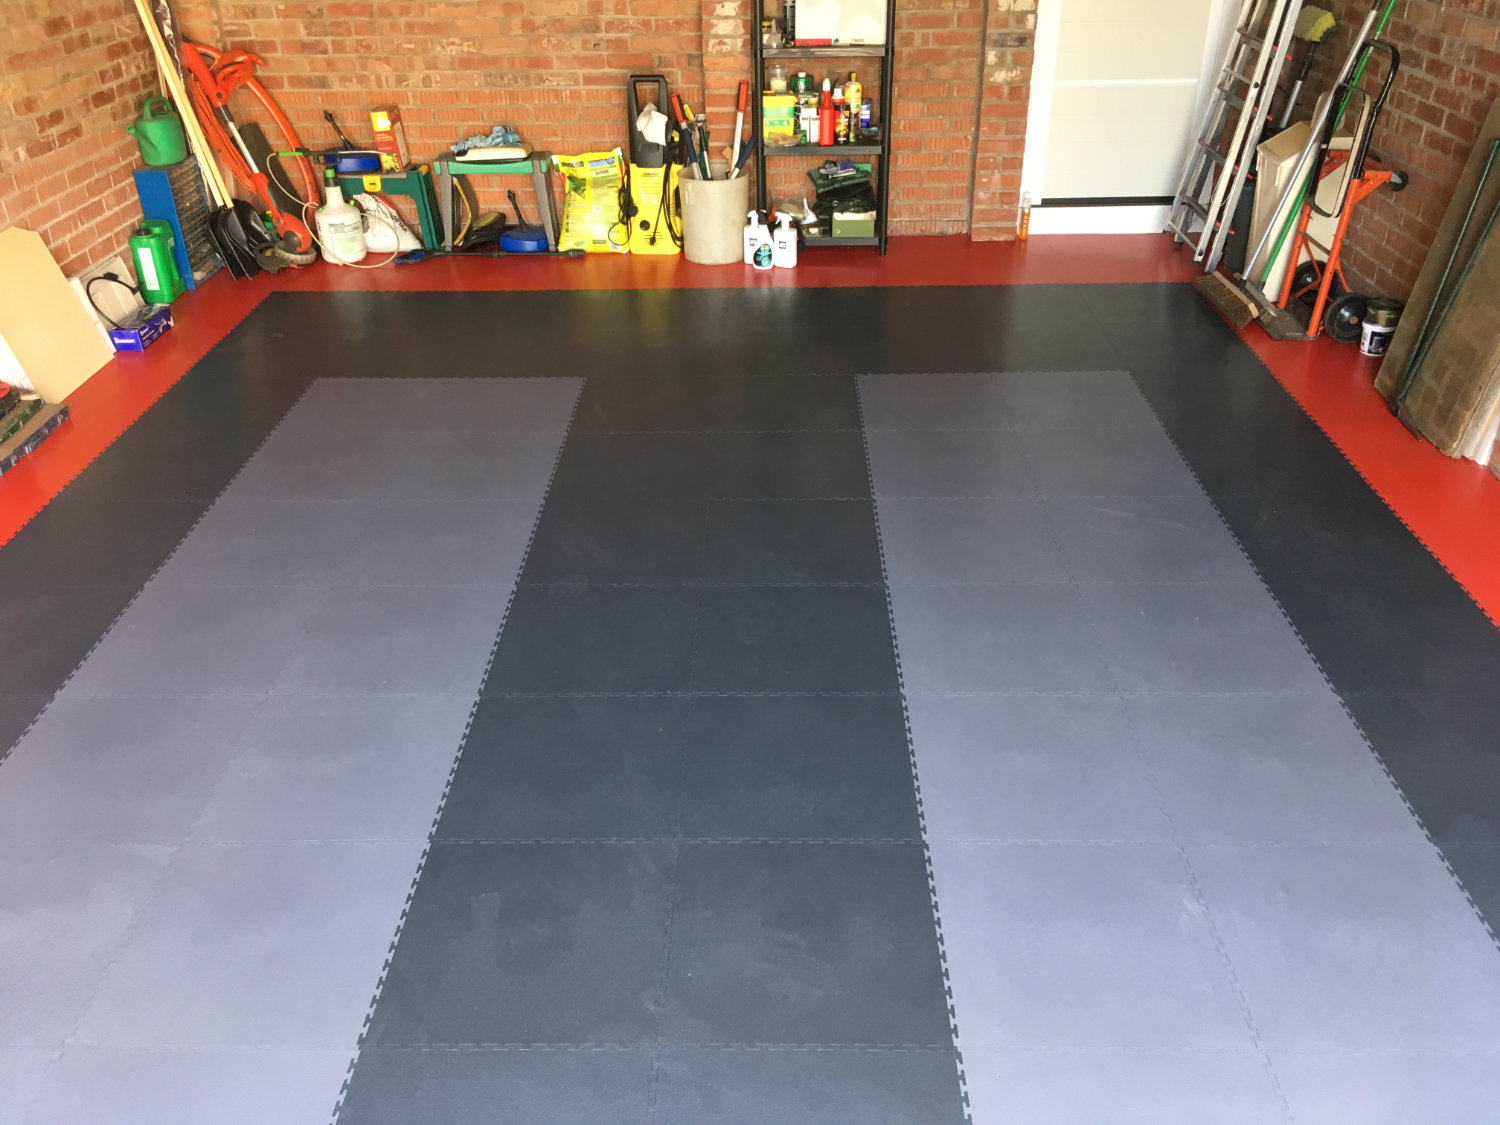 Another garage floor transformed making the garage a much more welcoming environment.